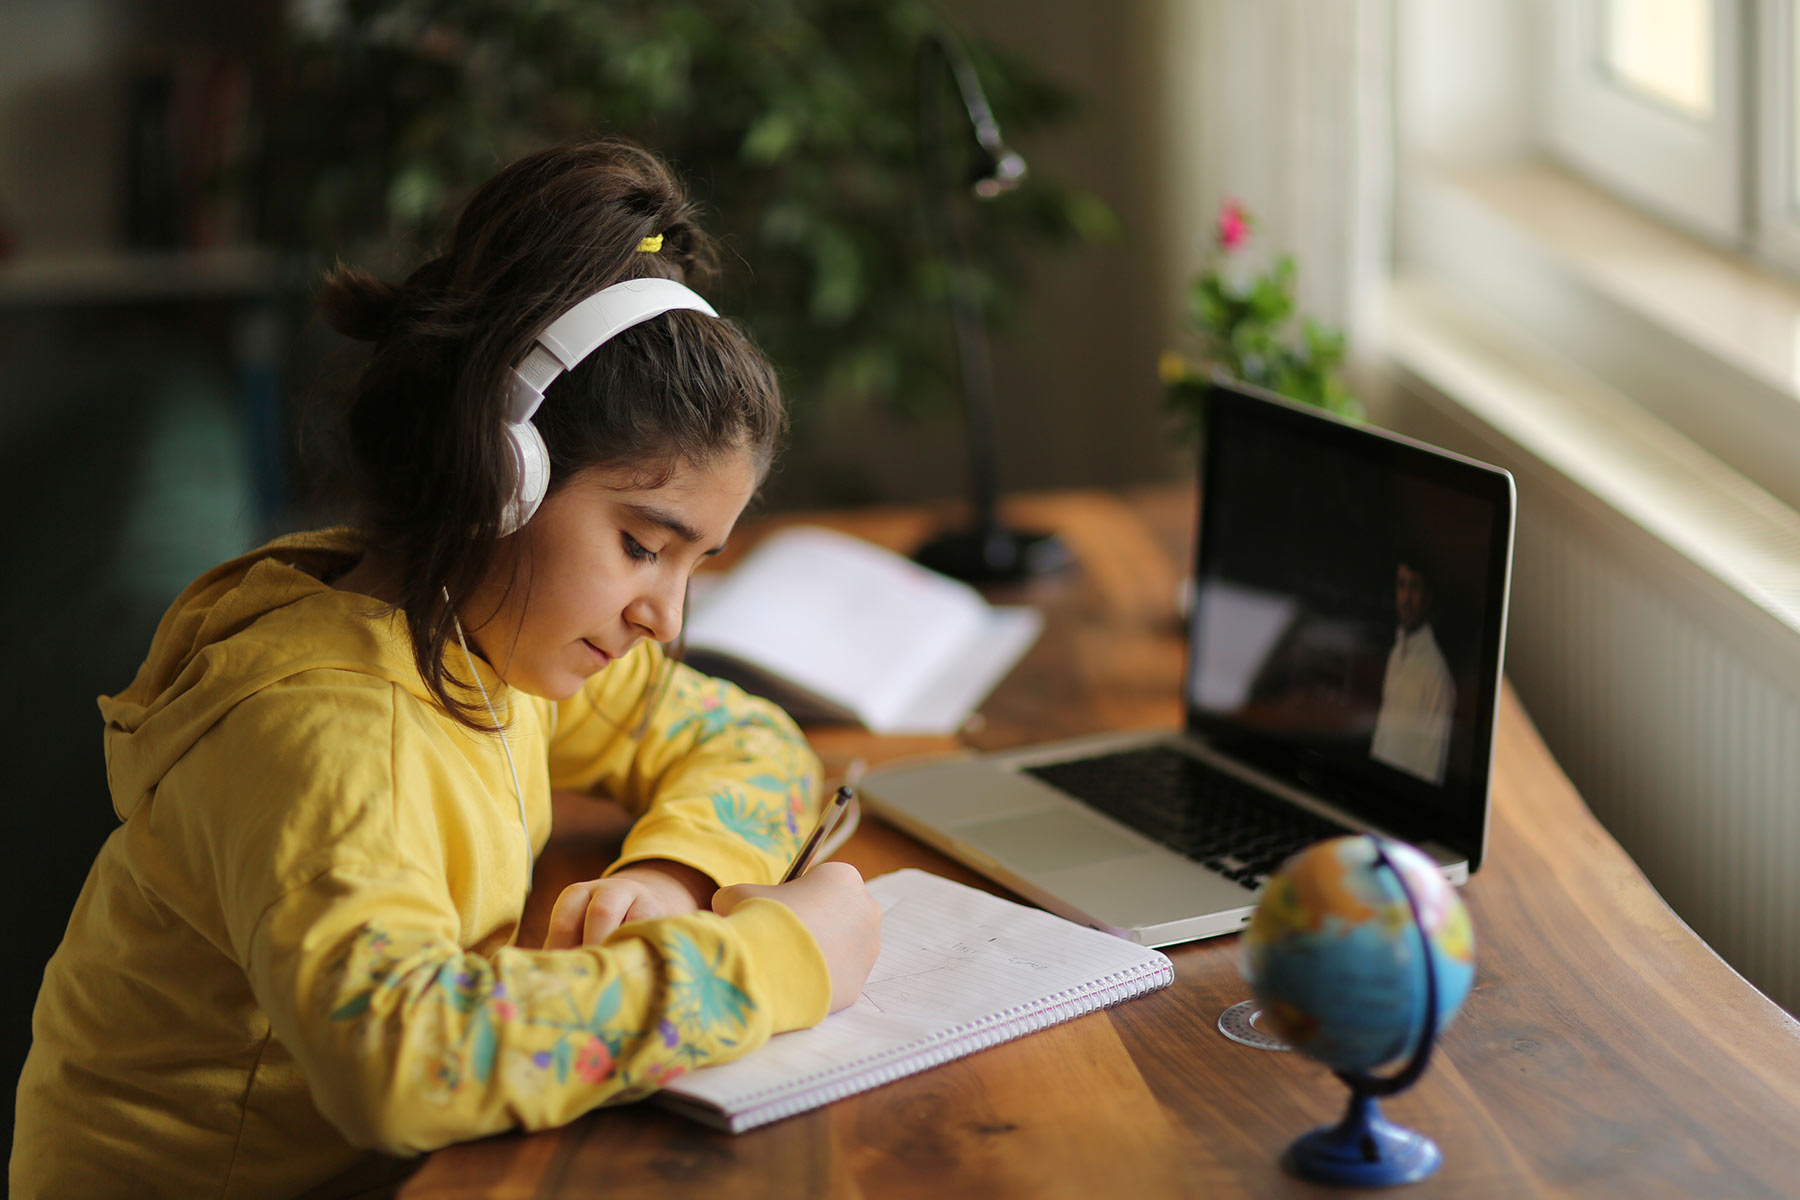 Middle school girl participating in virtual learning at home